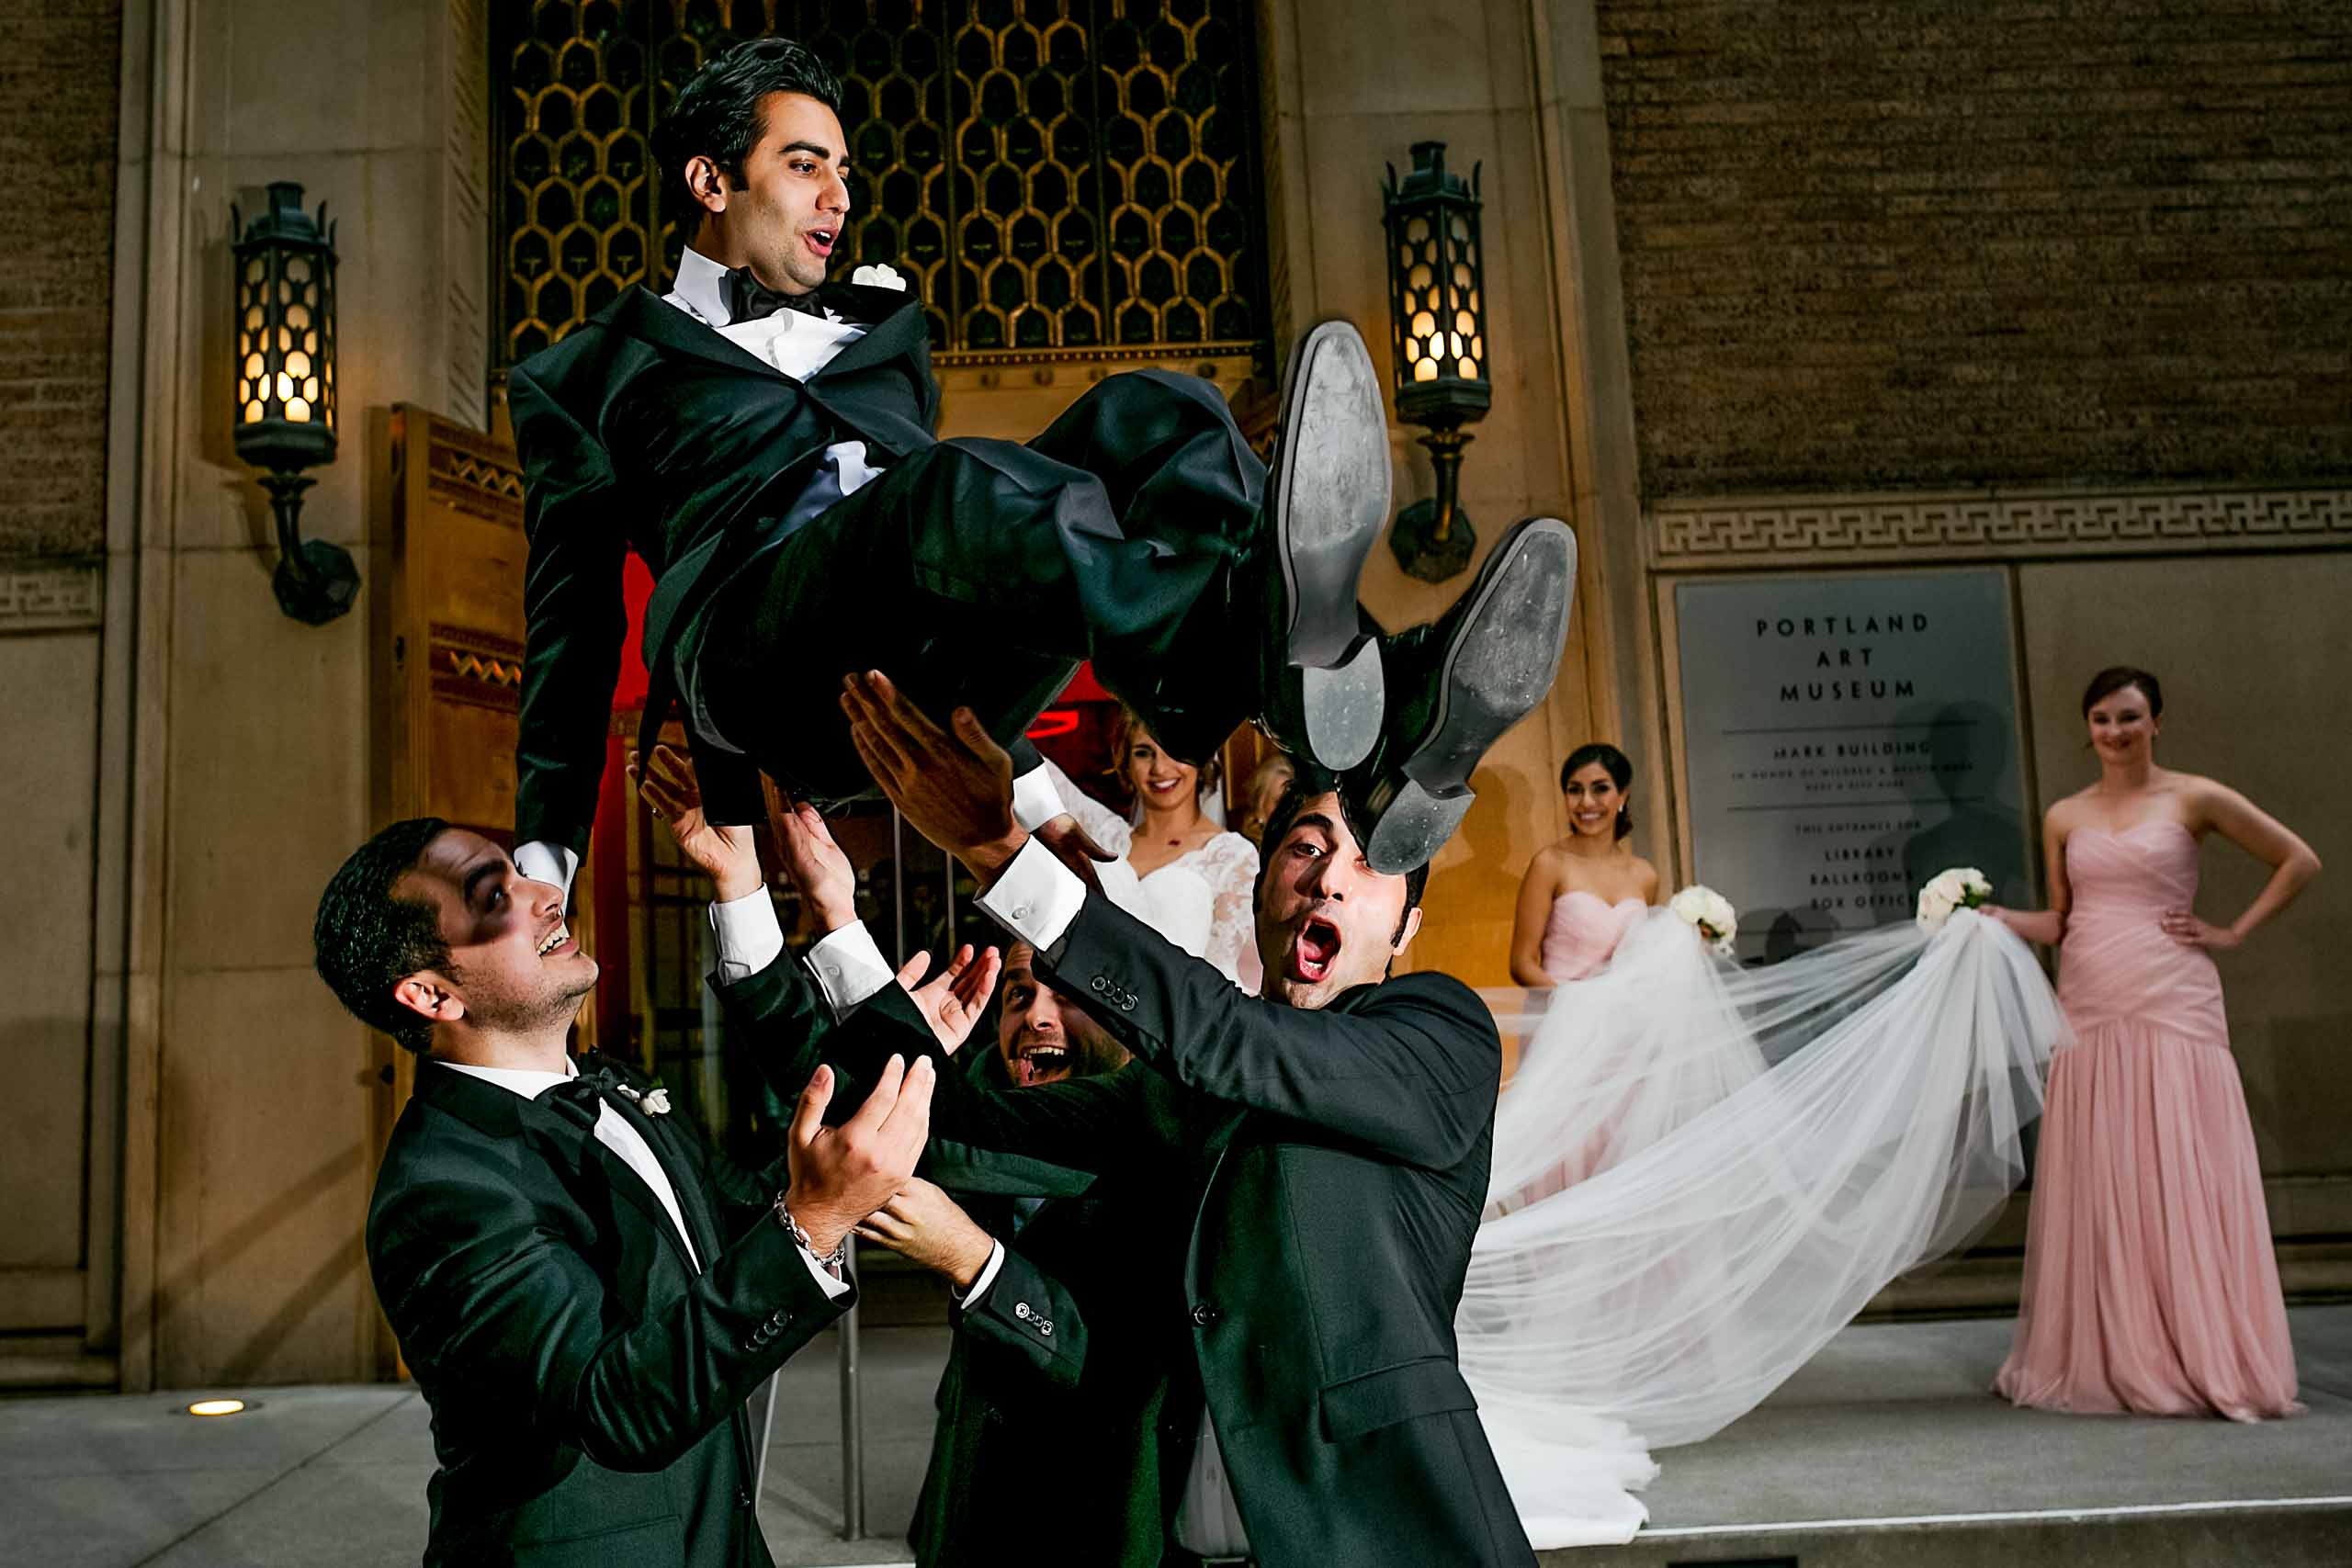 A groom being thrown into the air by his best friends moments after his Portland Persian wedding at the Portland Art Museum